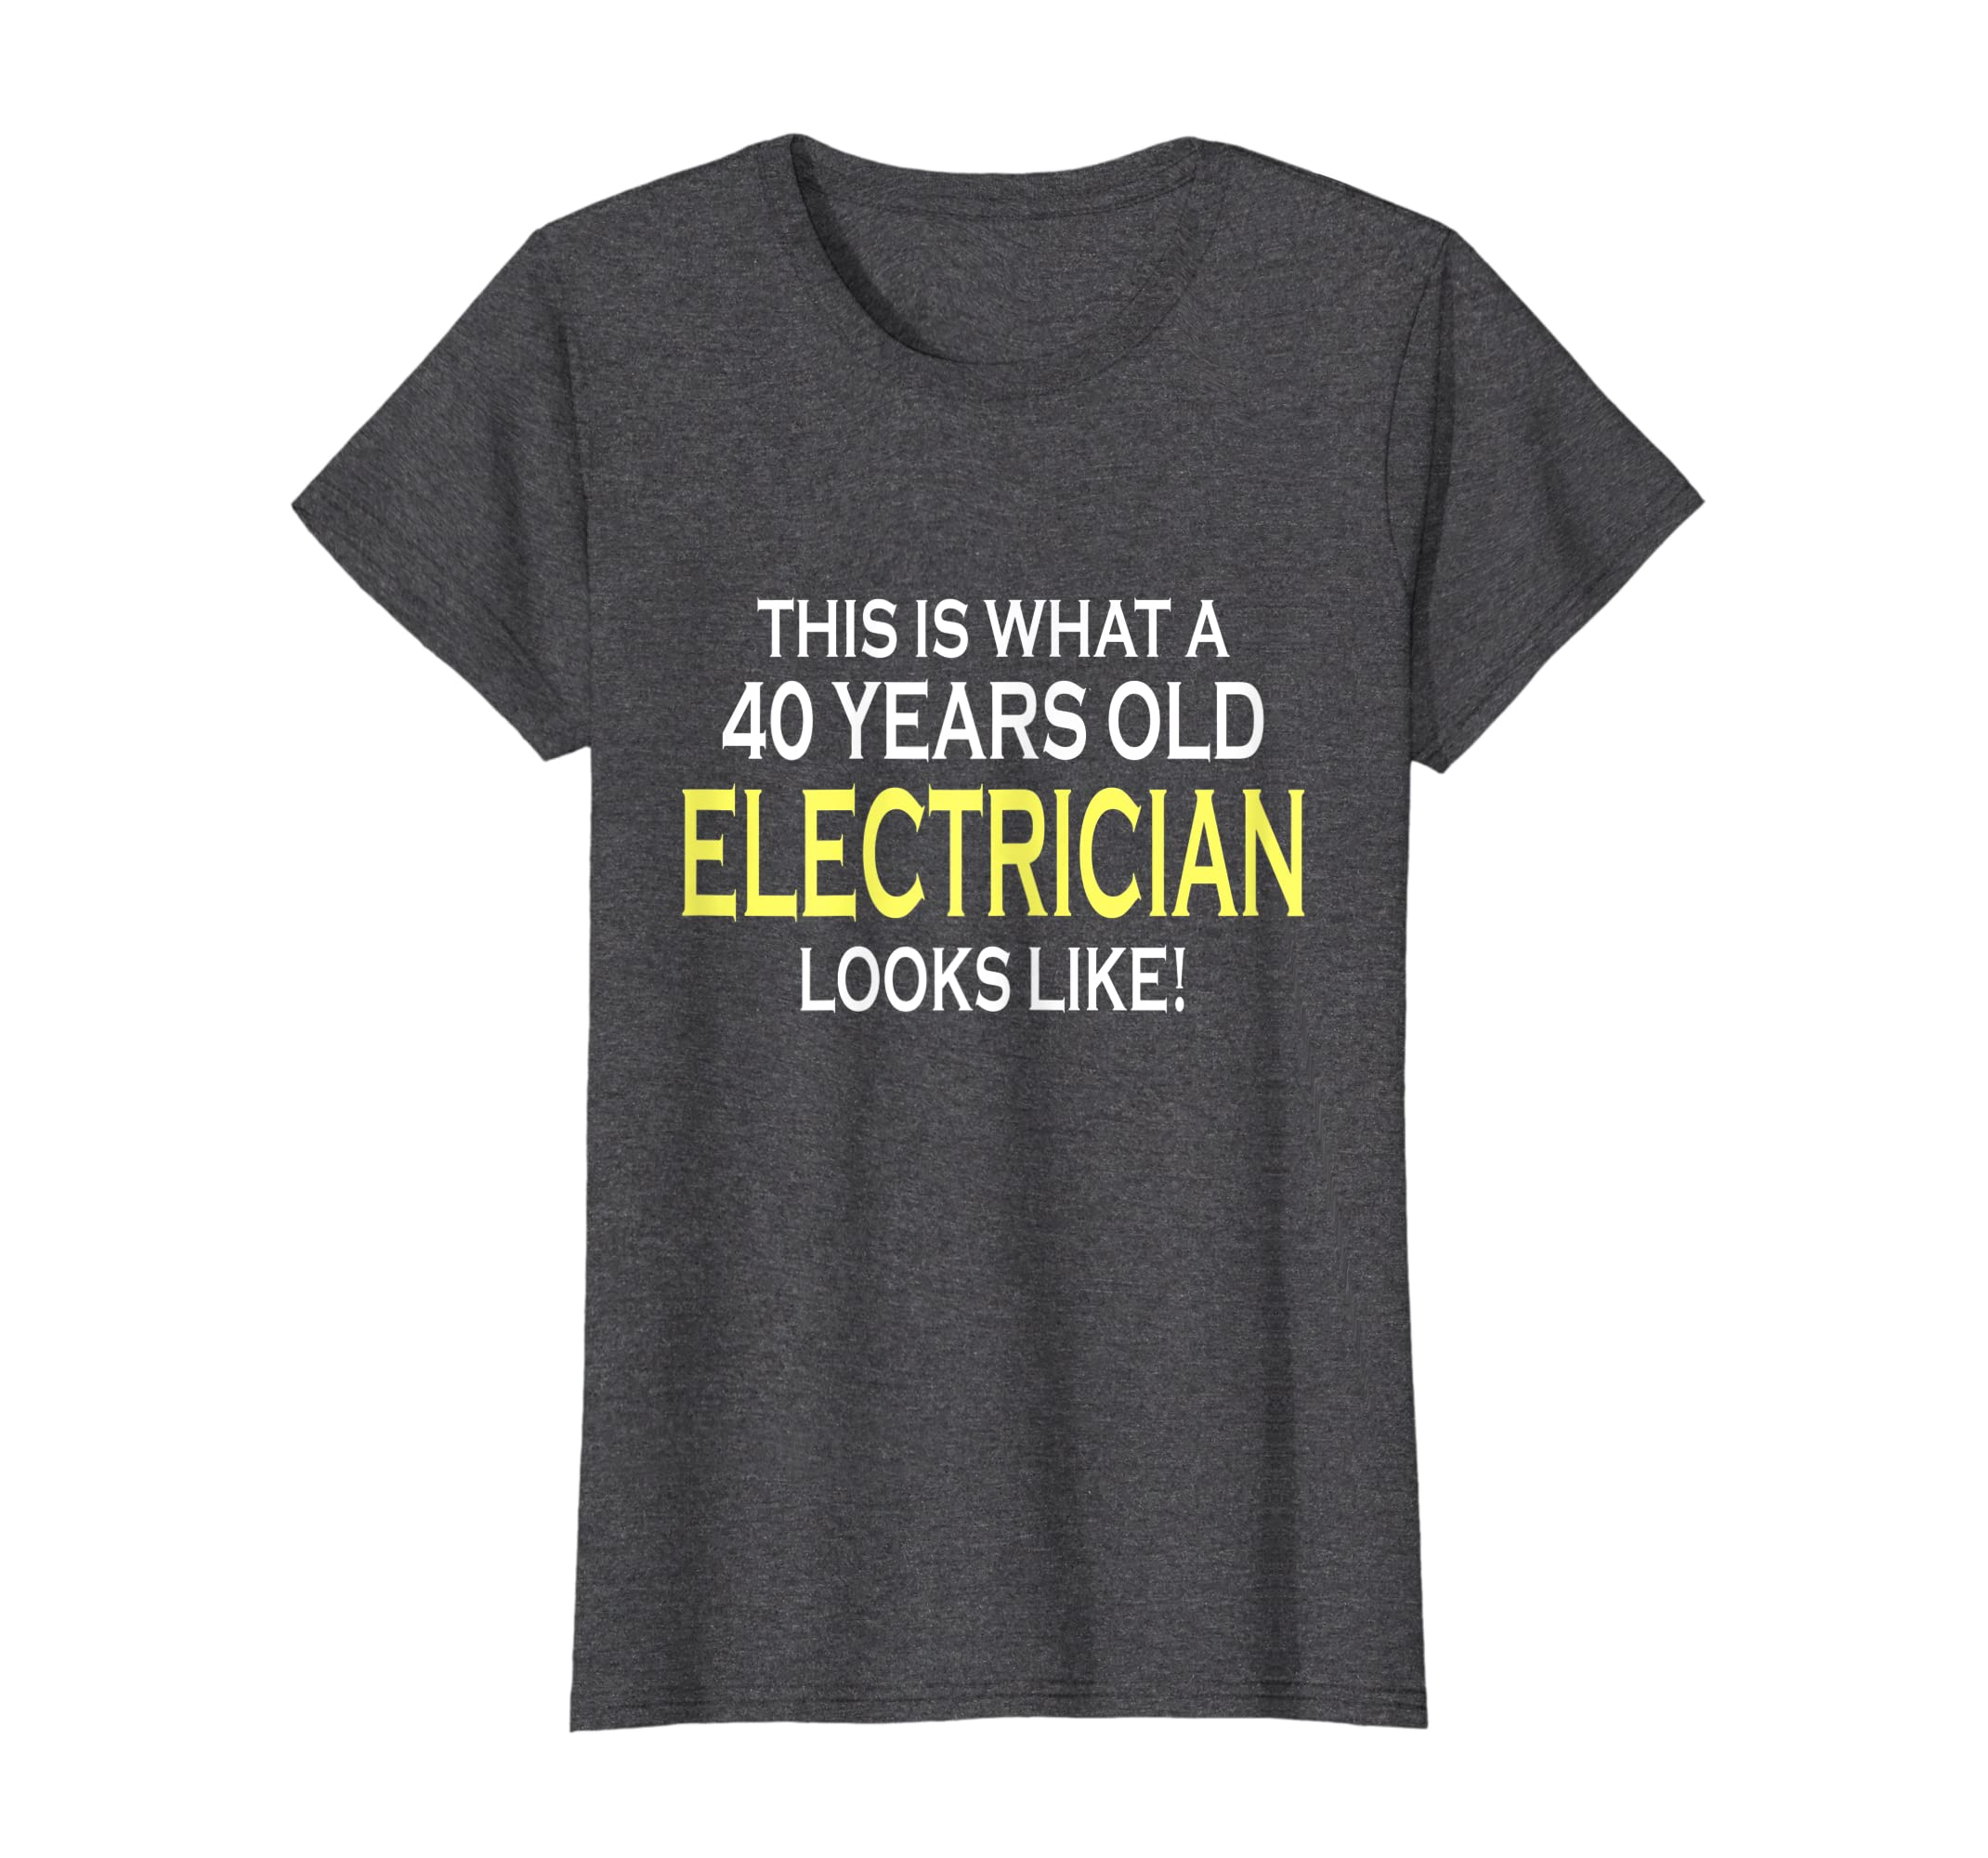 61f36ec1c4a4 Amazon.com: This is what a 40 year old Electrician look like T Shirt:  Clothing